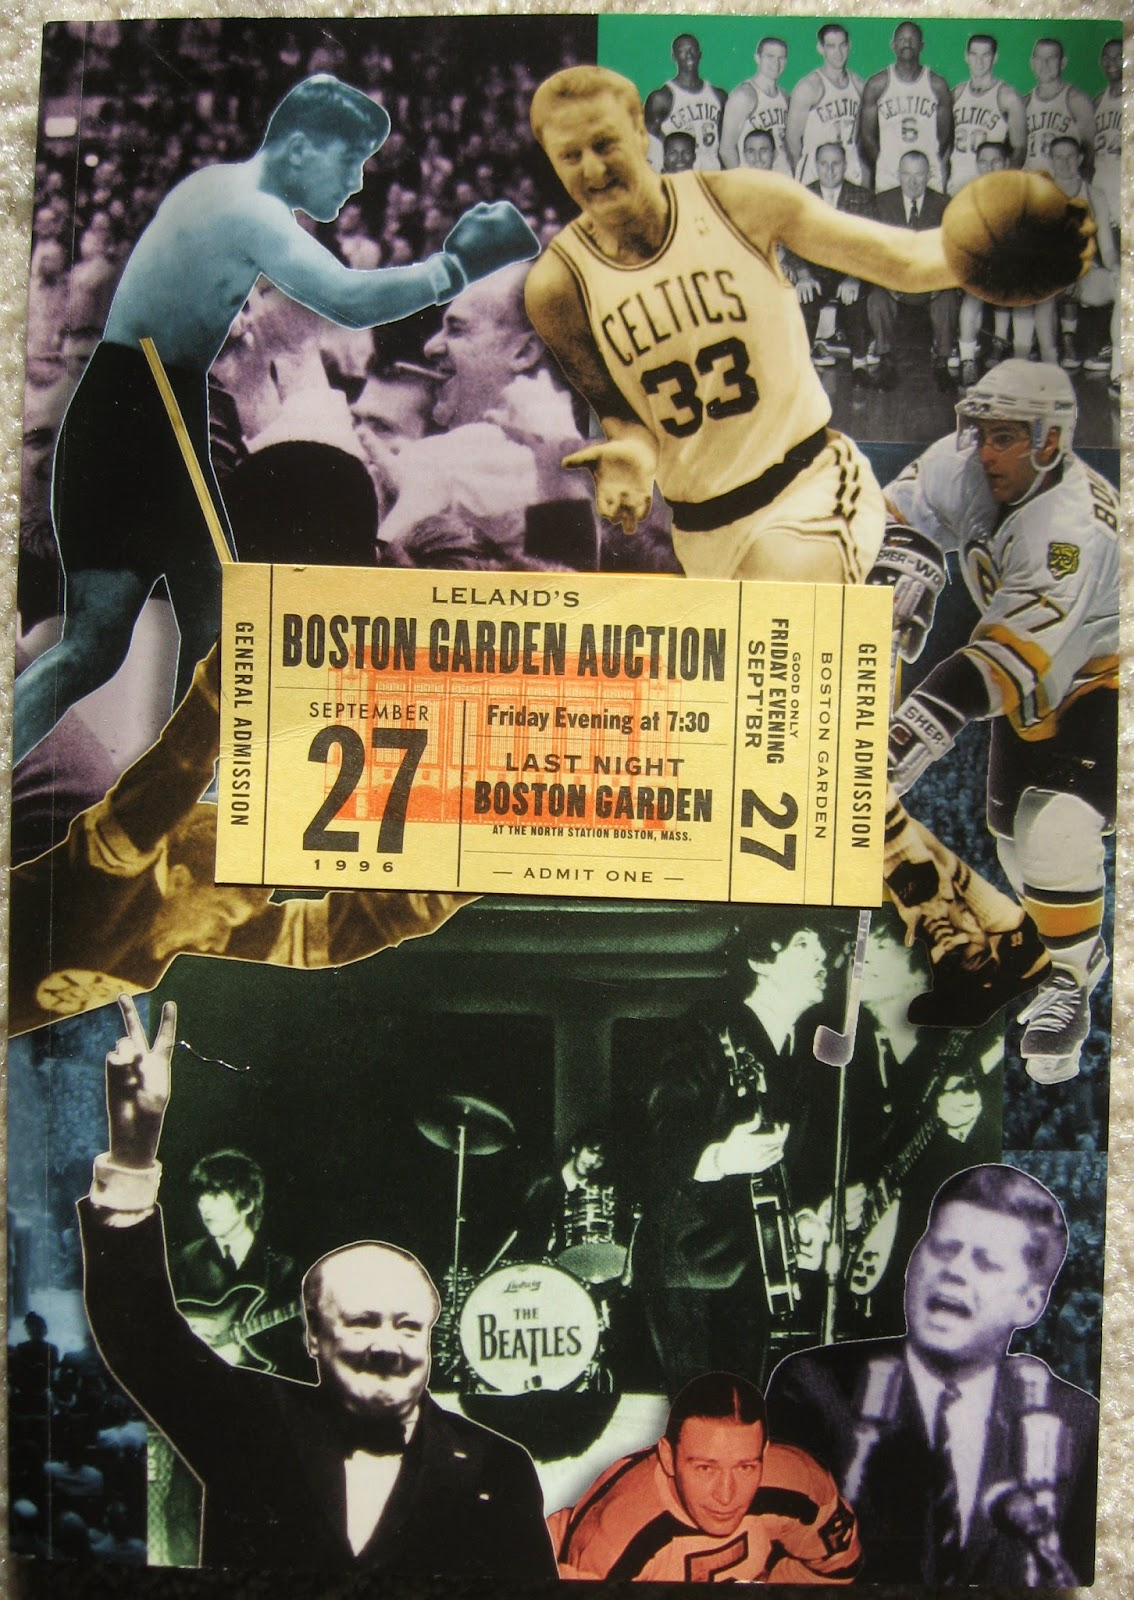 Auction booklet displaying major items up for bid Boston Garden 1996